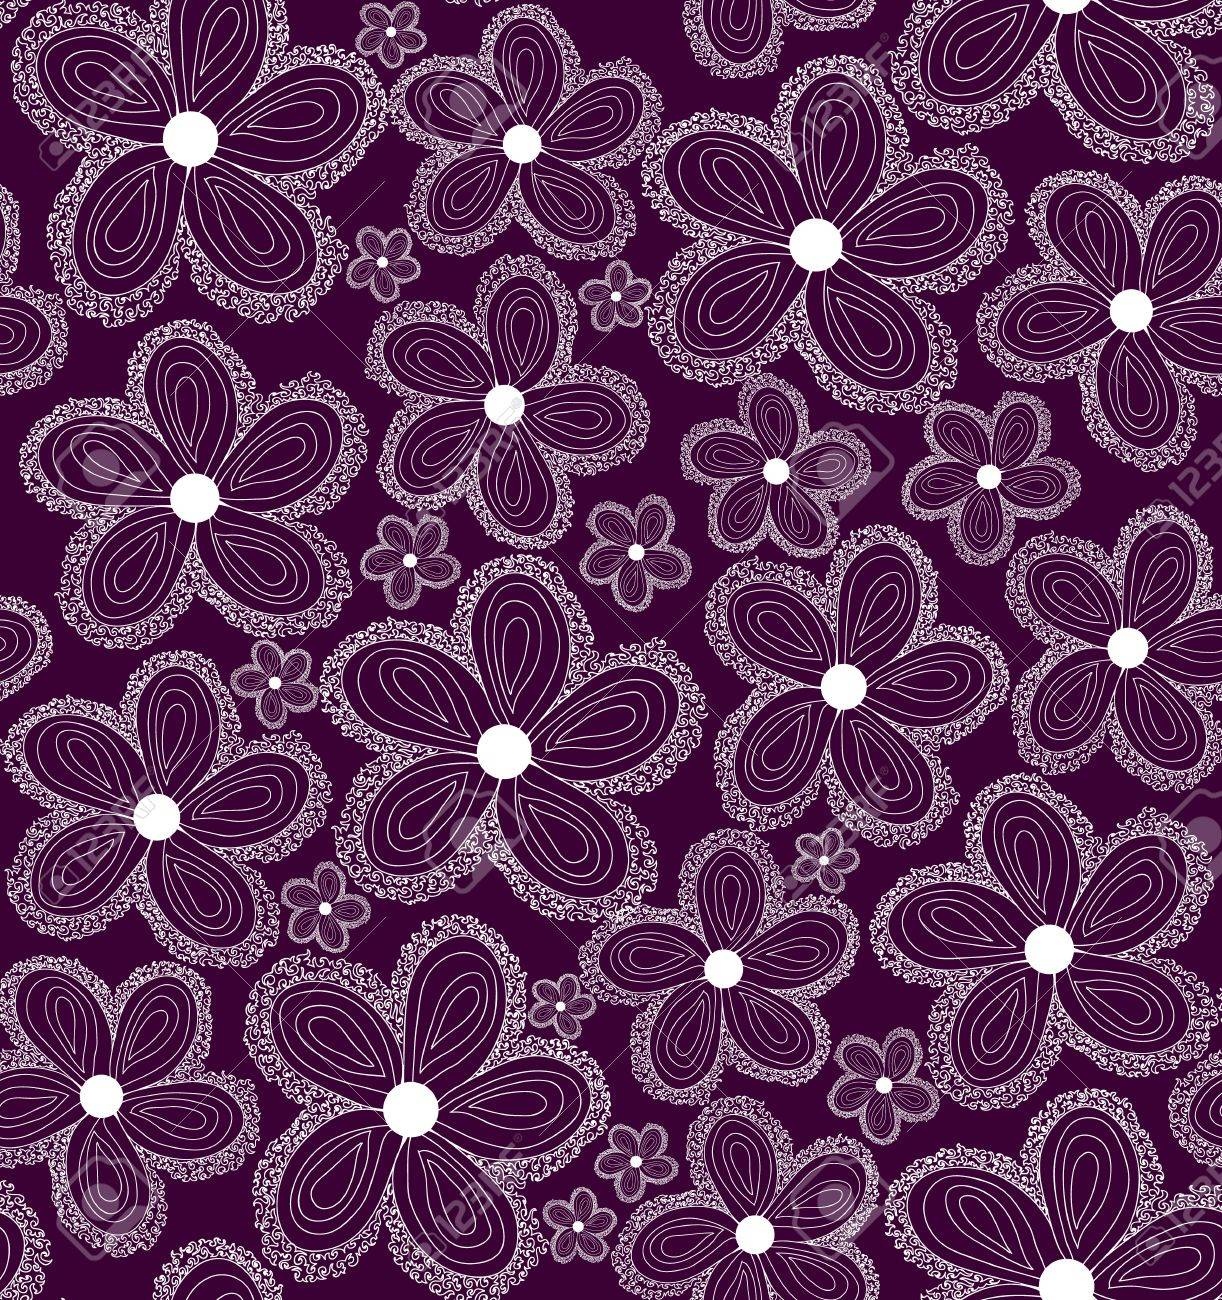 Bed sheets texture seamless - Beautiful Violet Seamless Pattern With Curling Daisy Flowers You Can Use Any Color Of Background Stock